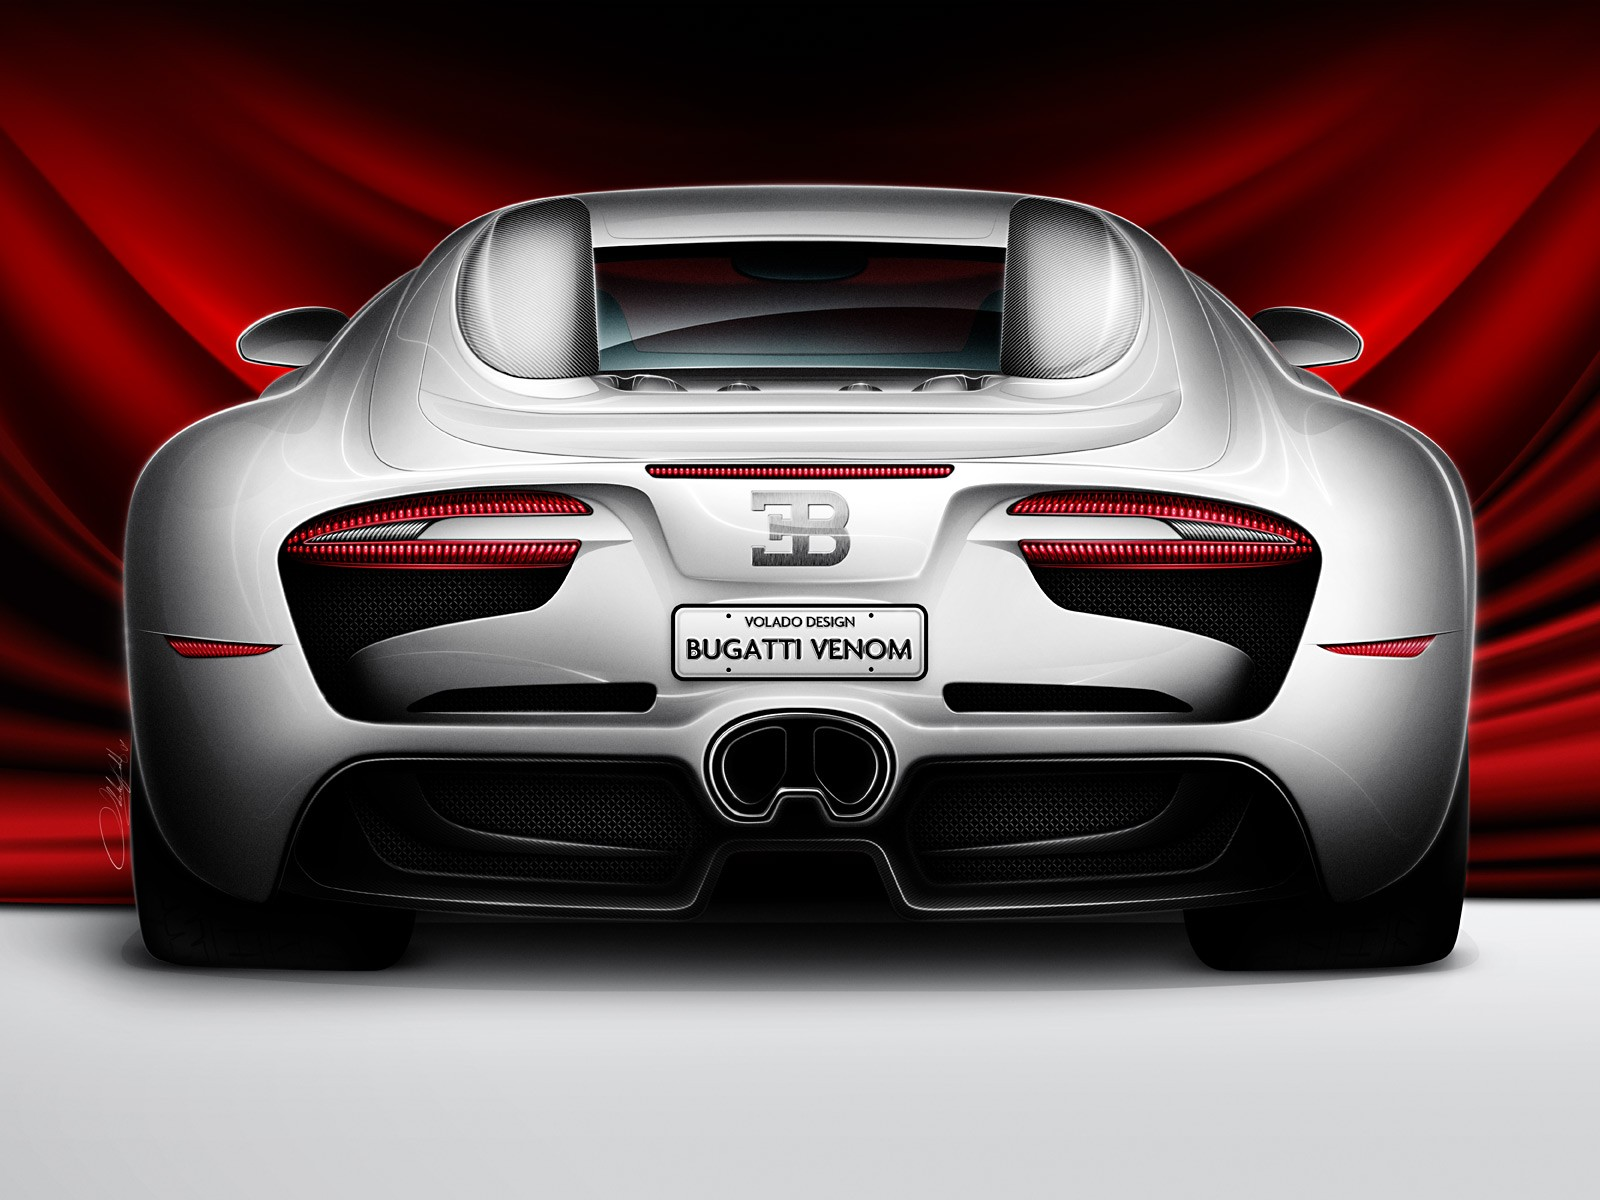 Cars Bugatti Venom Concept Rear View HD Wall Gallery Free